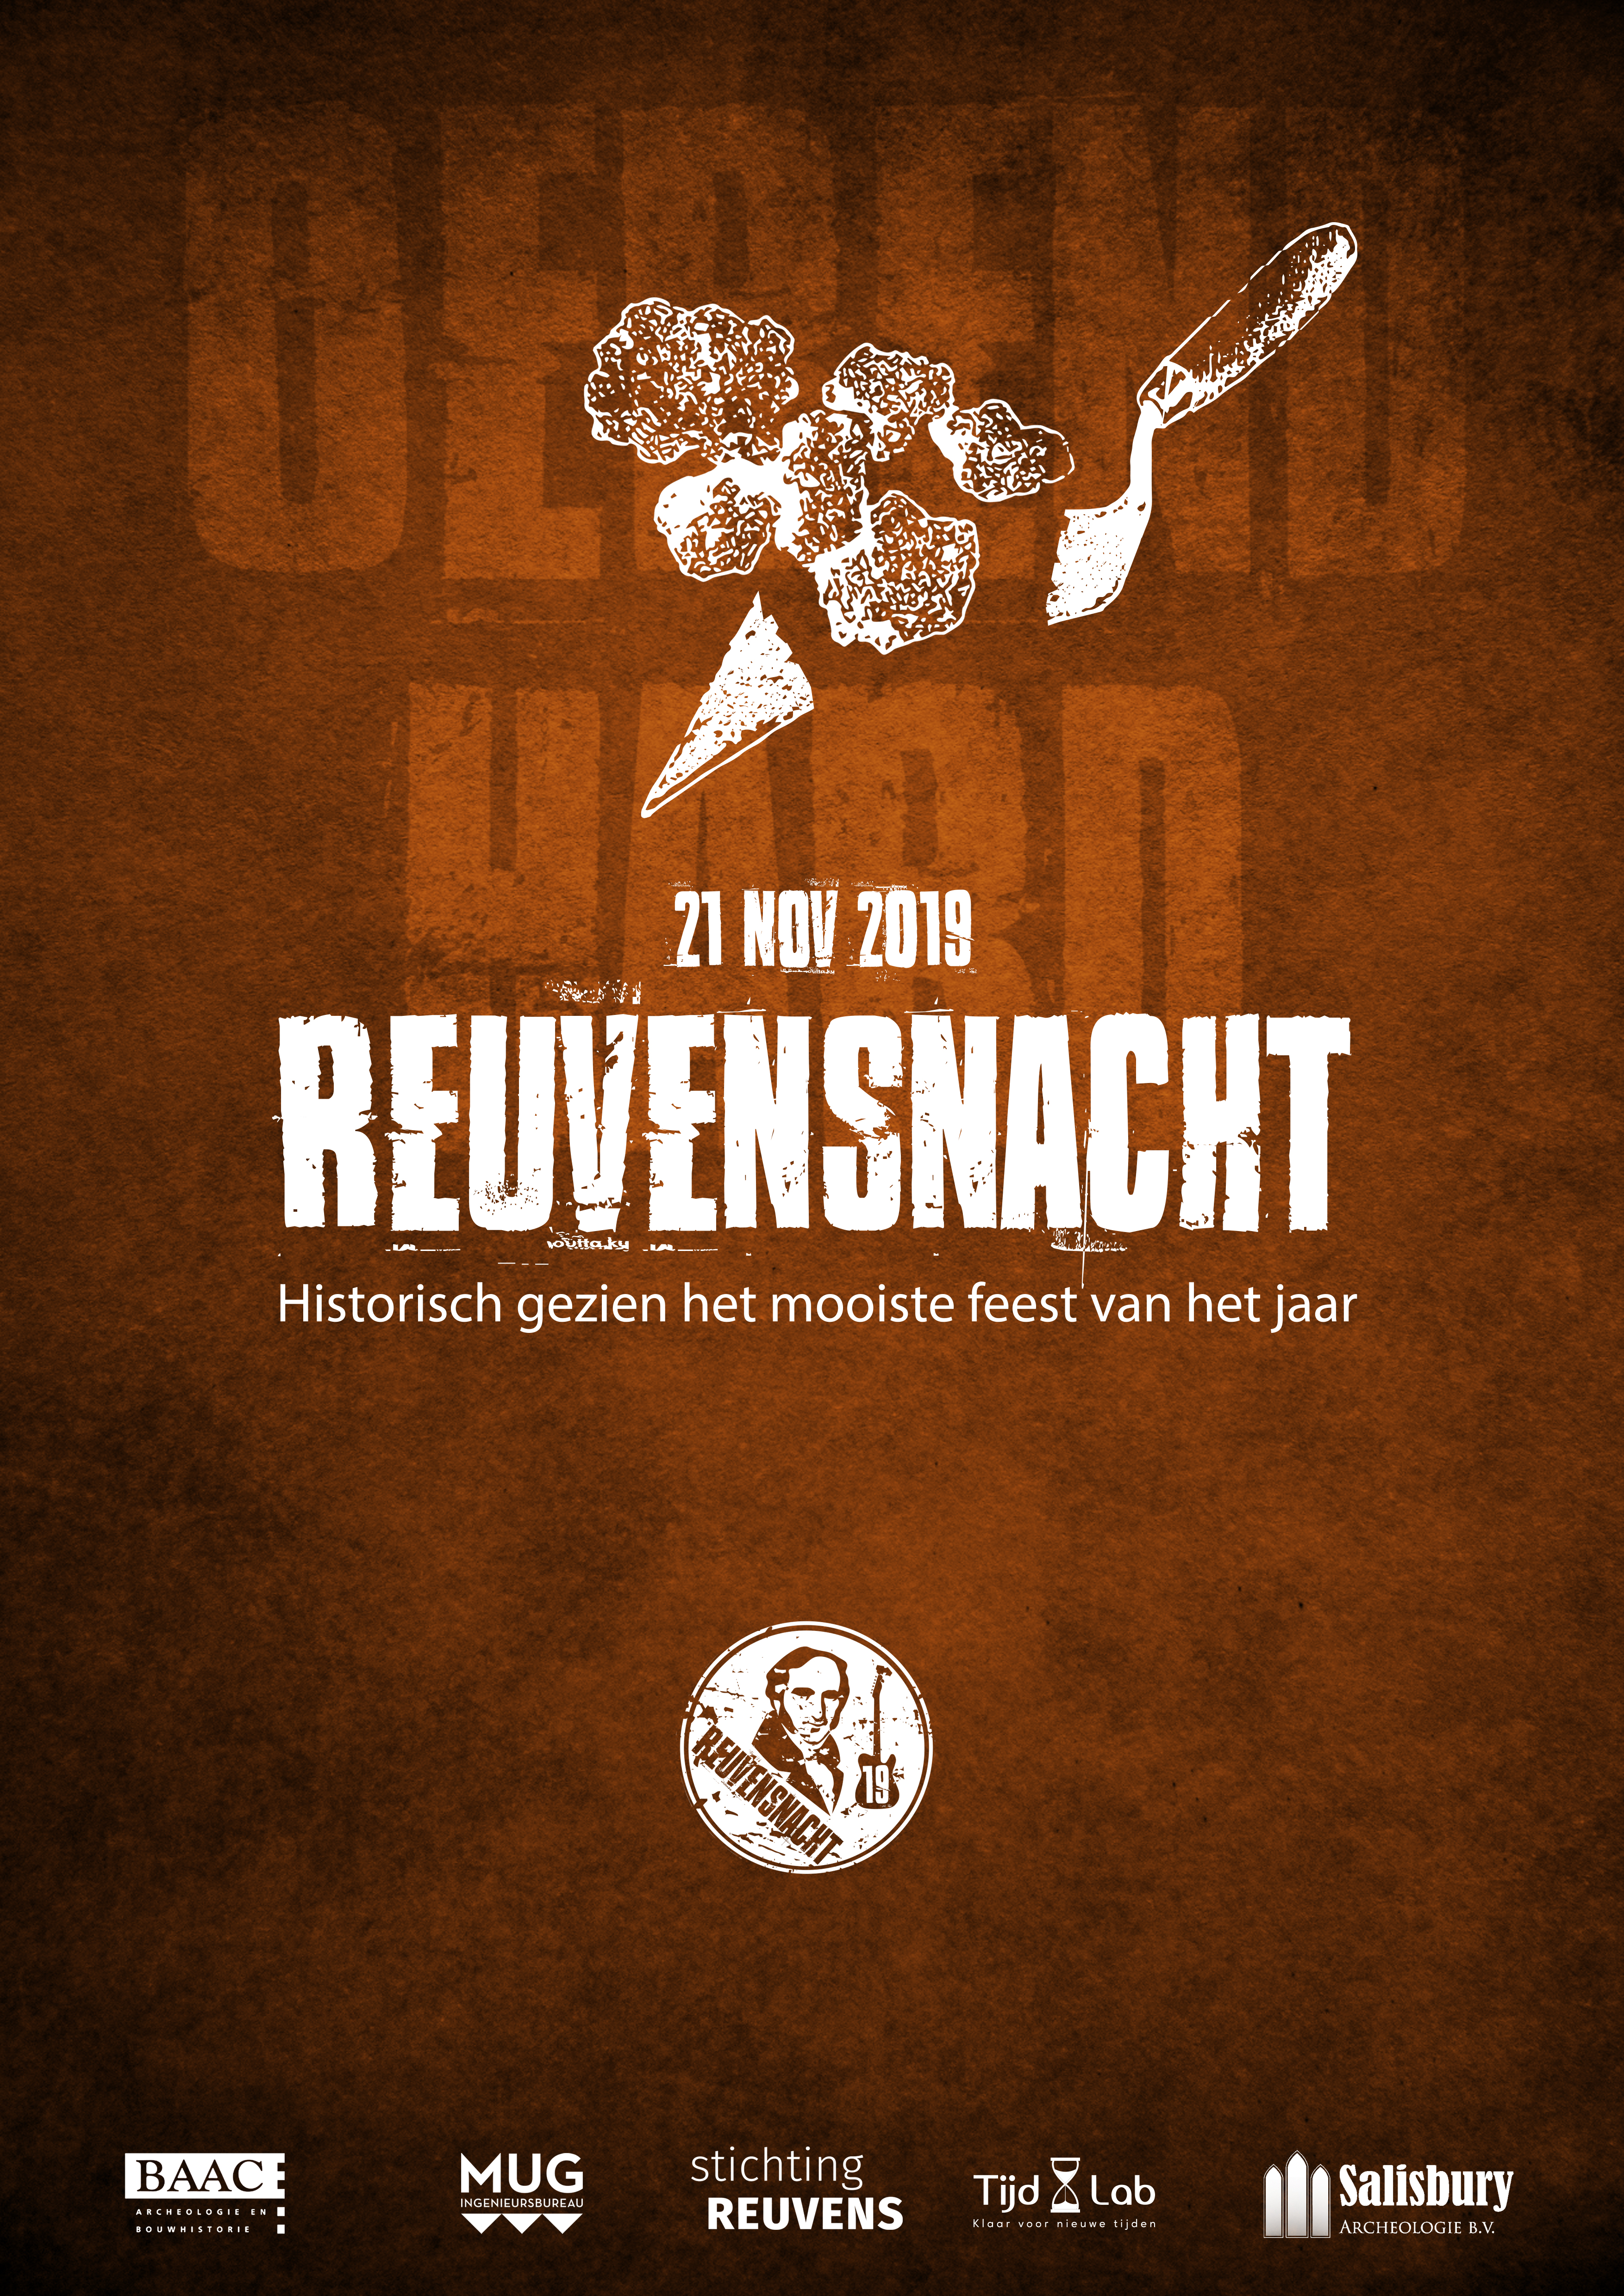 Reuvensnacht 2019_oerend hard-Recovered-Recovered